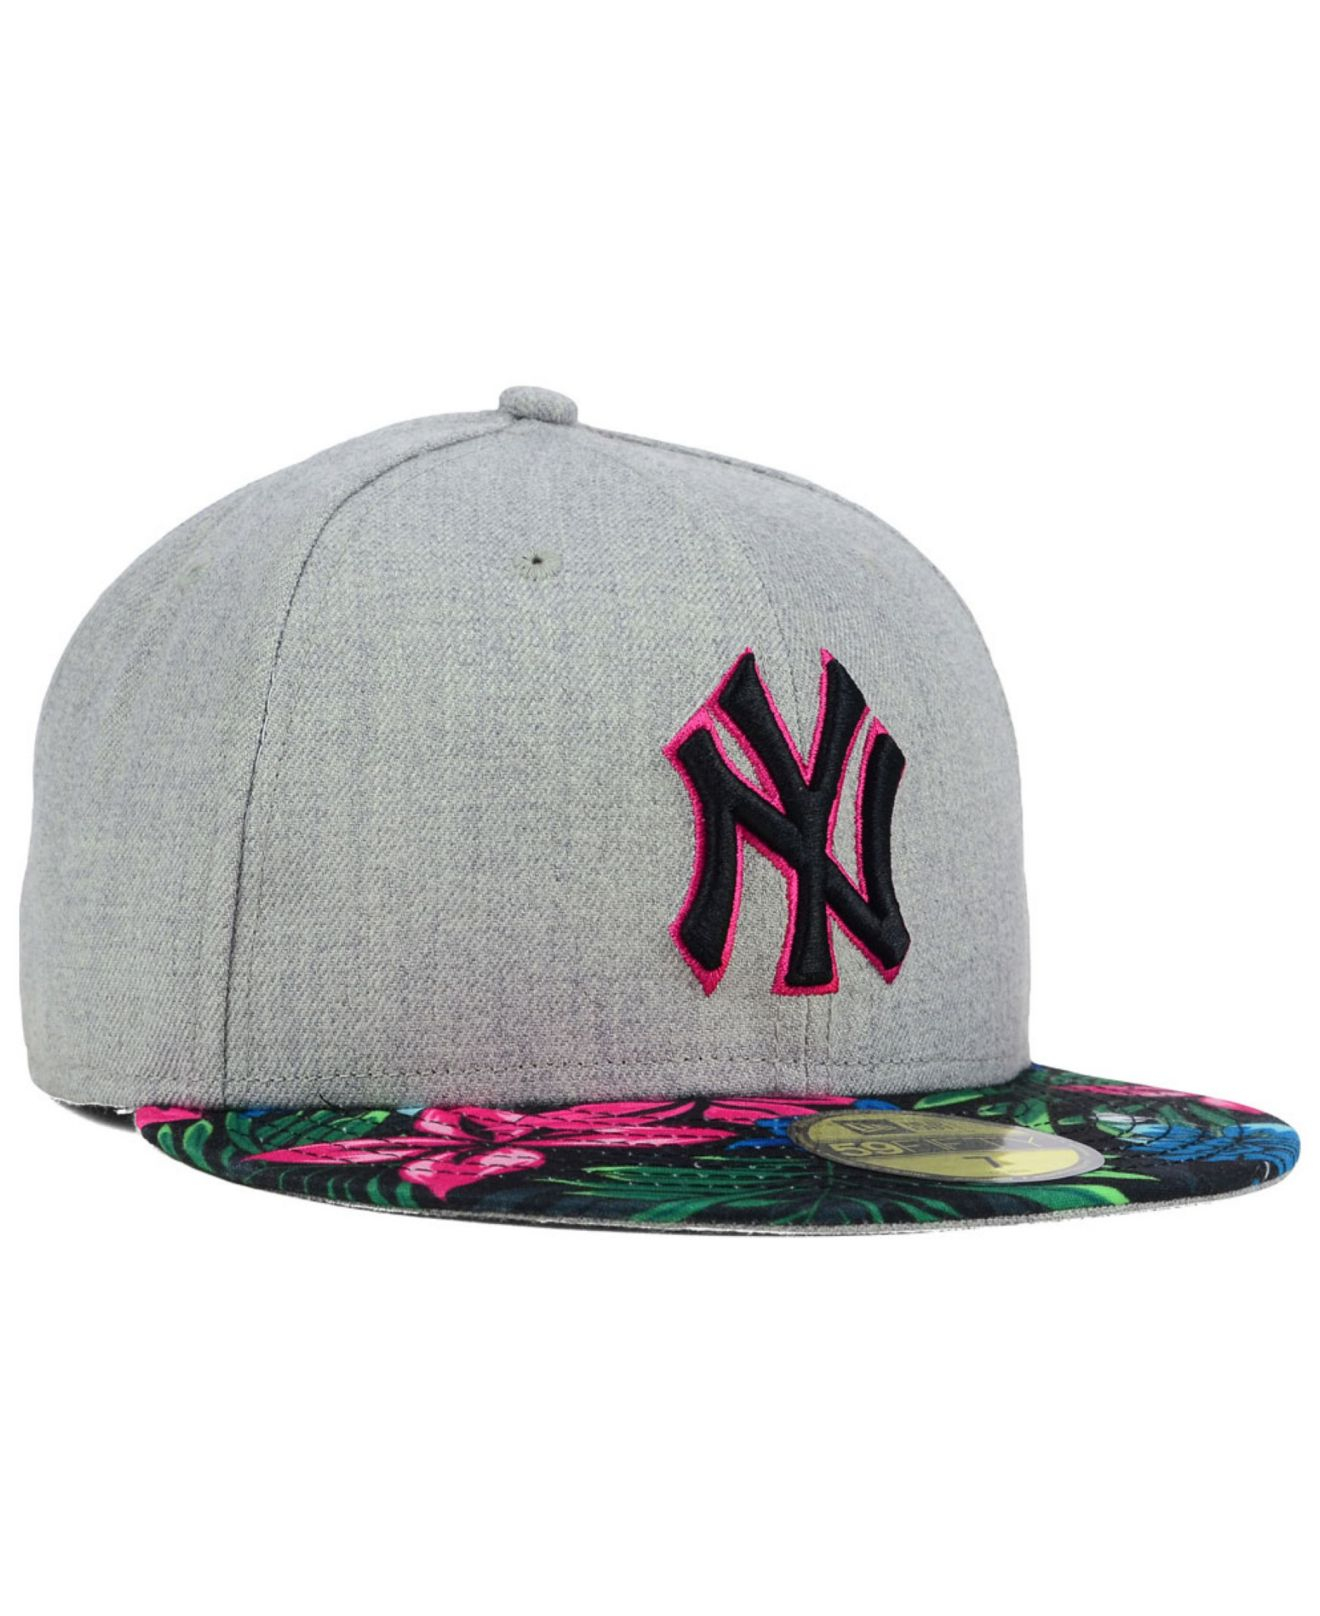 d7057dcbd4ac6 KTZ New York Yankees Floral Mashup 59fifty Cap in Gray for Men - Lyst